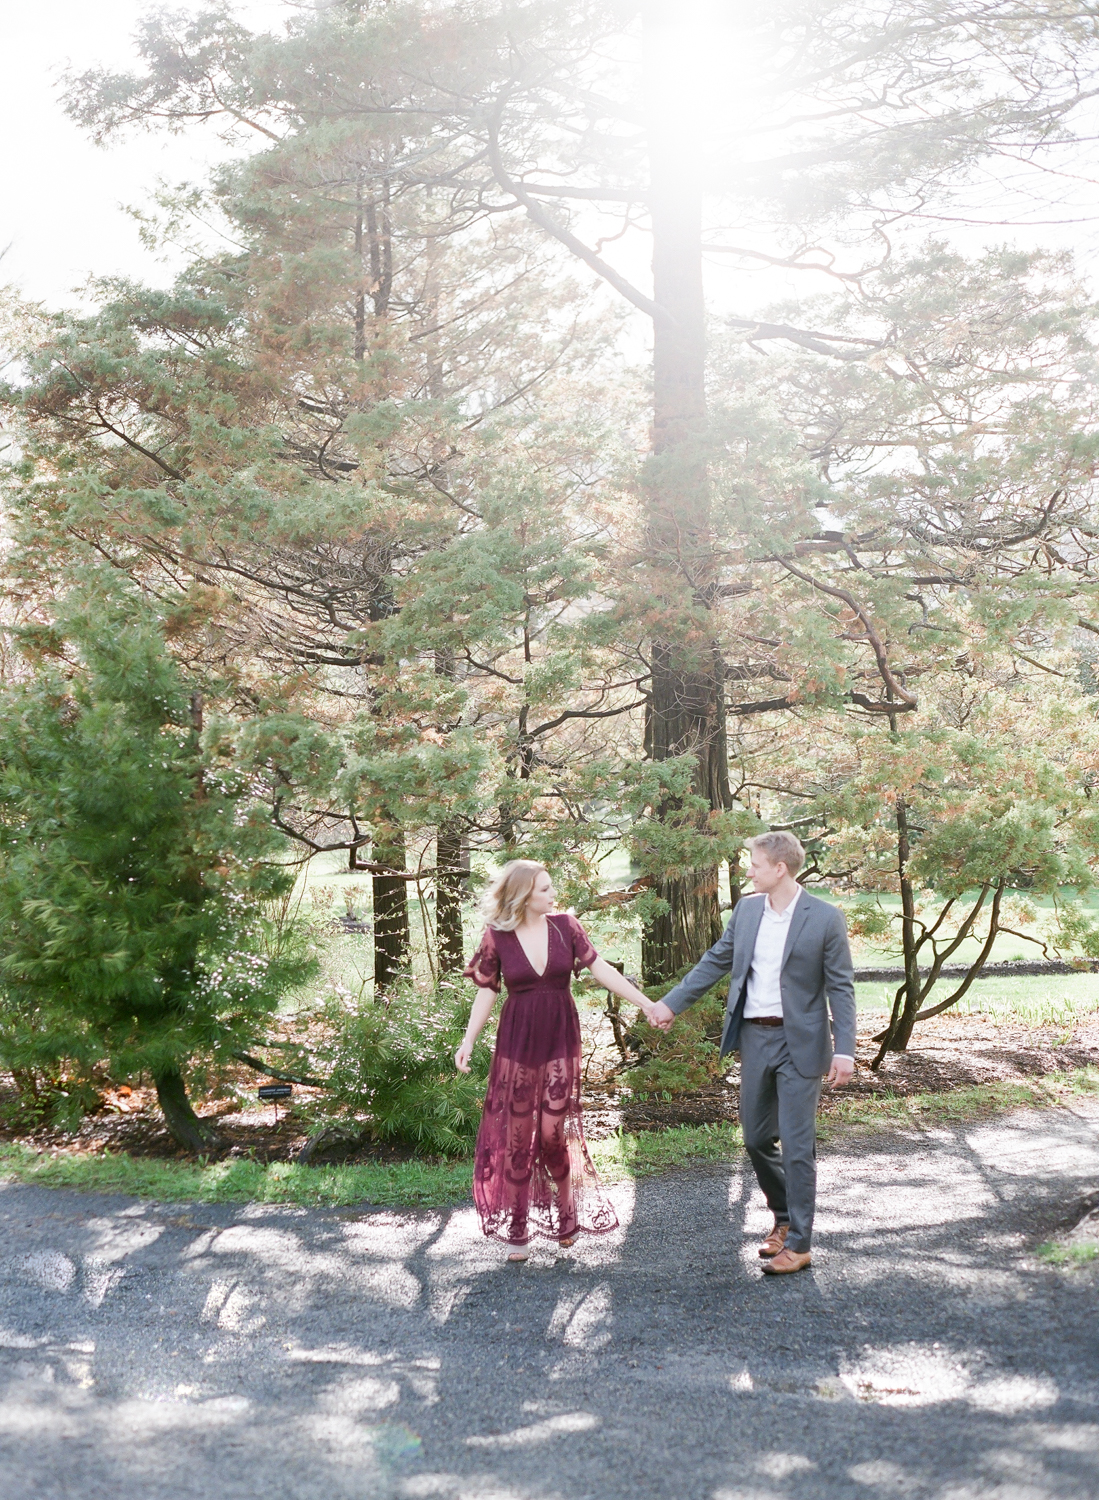 Jacqueline Anne Photography - Amanda and Brent-90.jpg